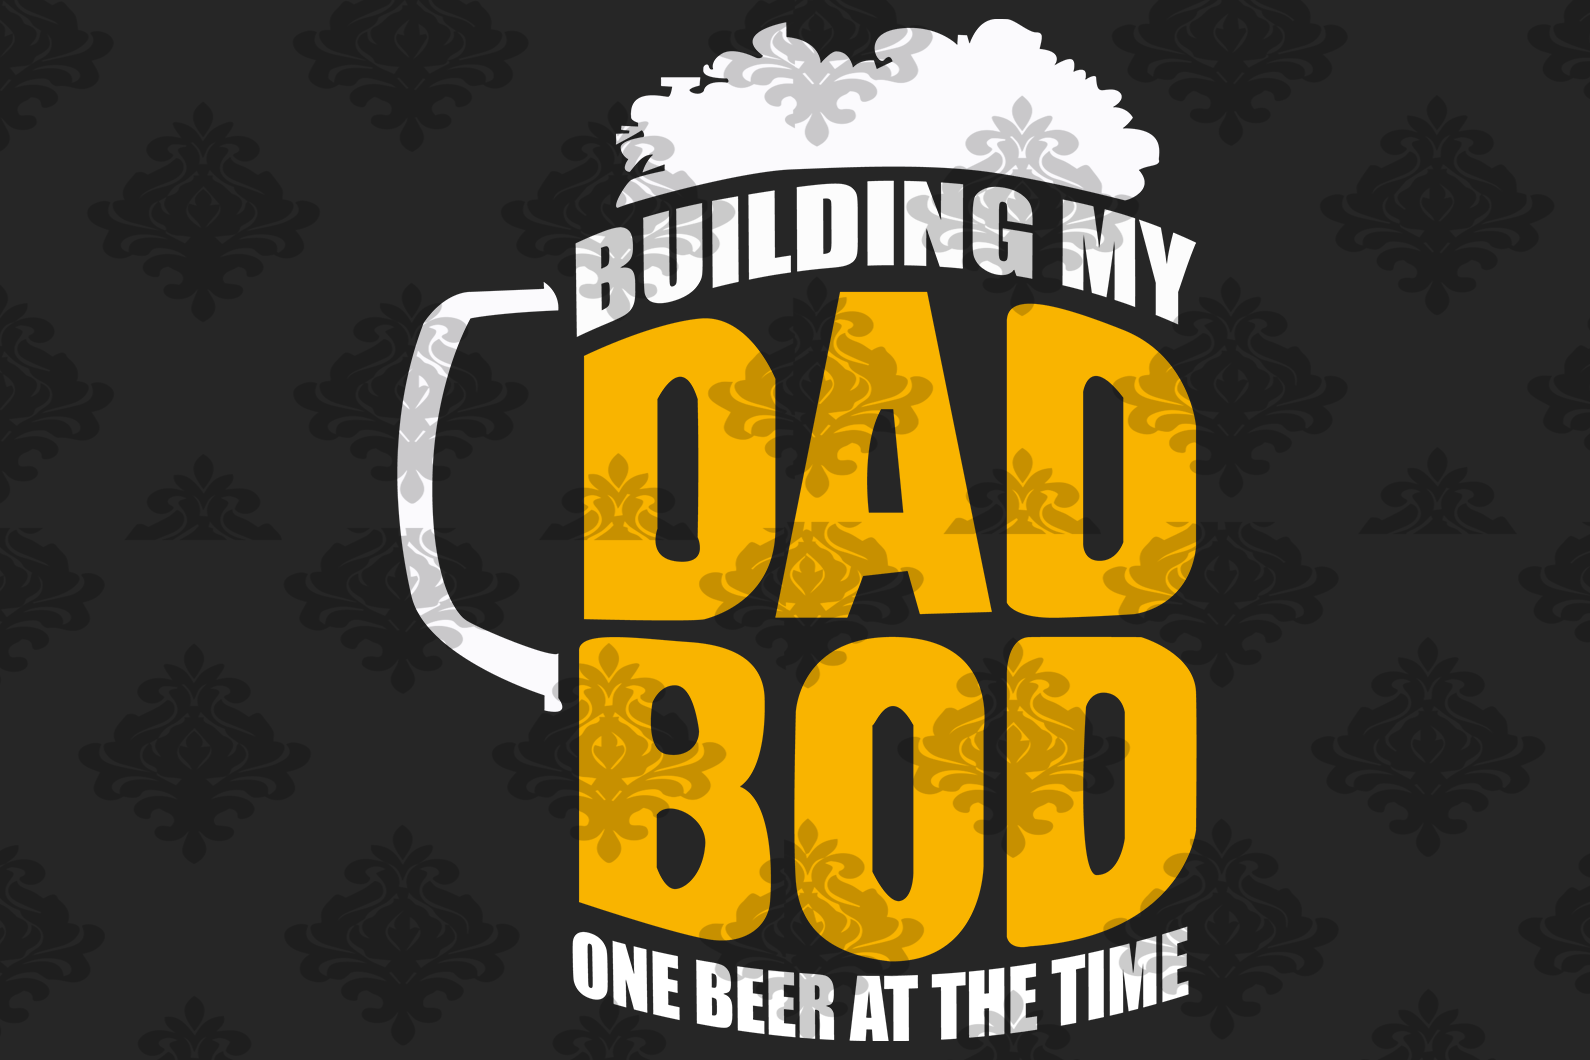 Building my dad bob one beer at the time, dad svg, papa svg, father svg, daddy svg, poppop svg Files For Silhouette, Files For Cricut, SVG, DXF, EPS, PNG, Instant Download